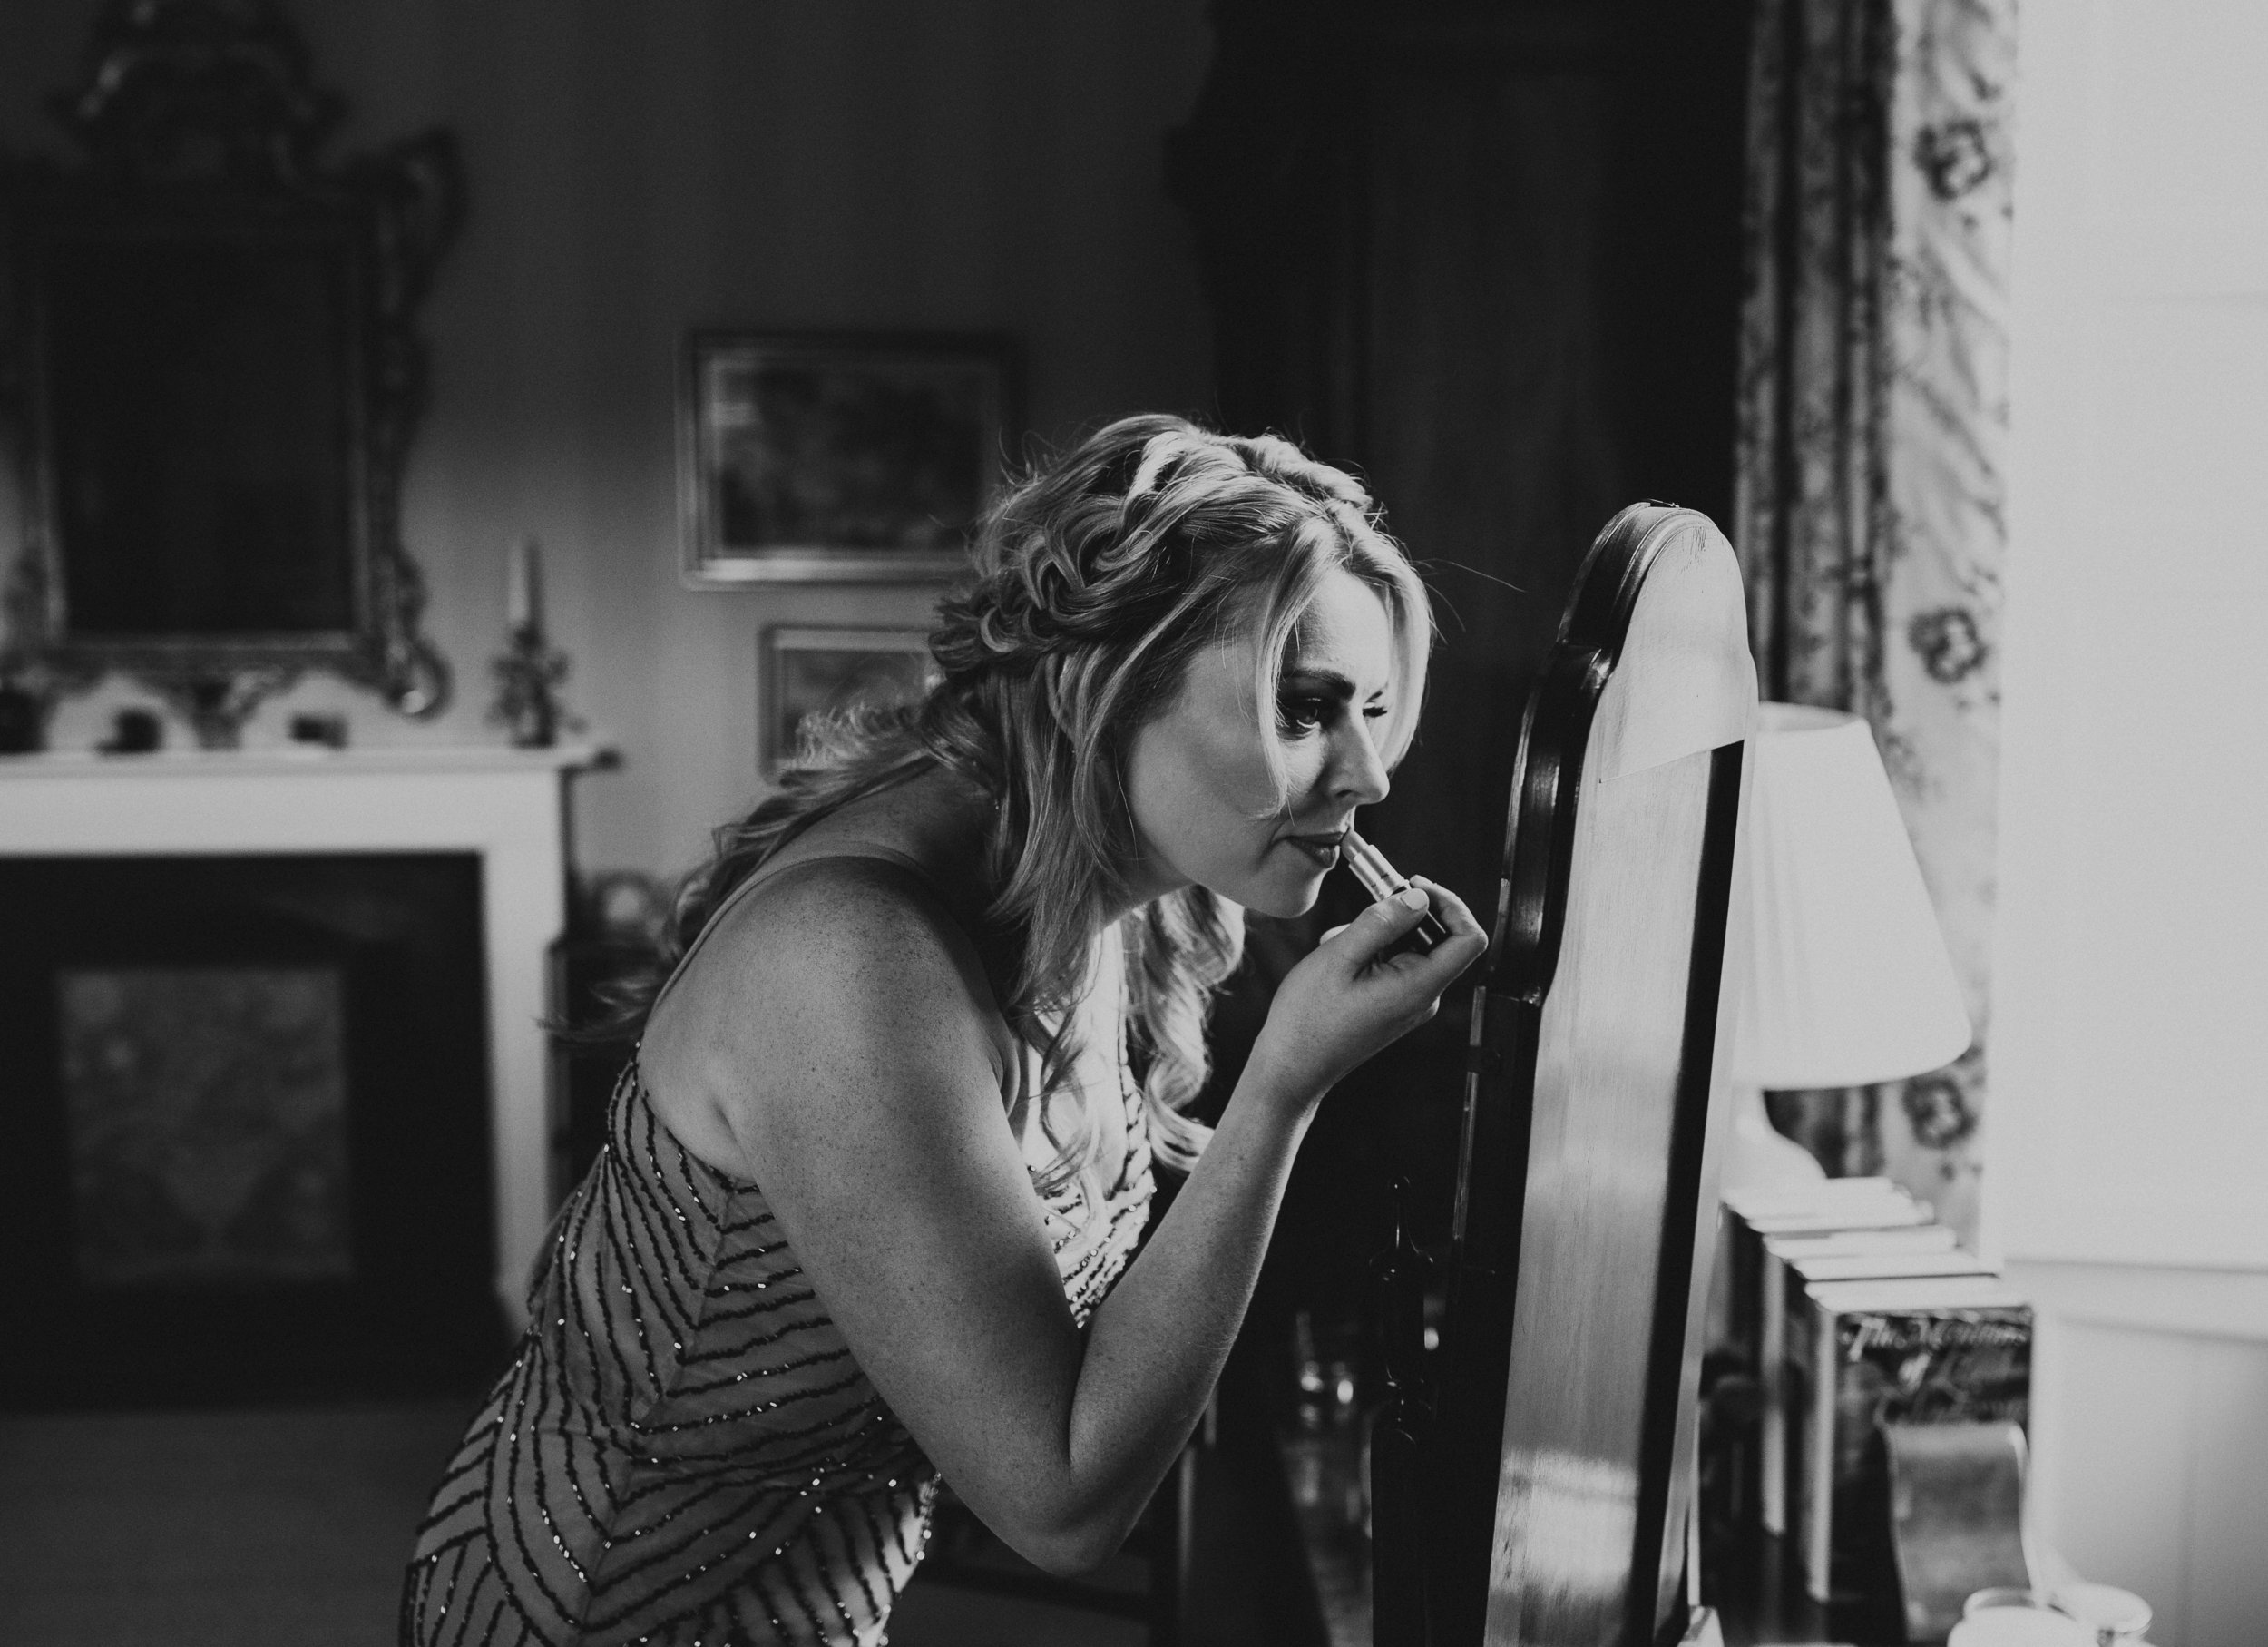 BYRE_AT_INCHYRA_WEDDING_PHOTOGRAPHER_PJ_PHILLIPS_PHOTOGRAPHY_KAYLEIGH_ANDREW_60.jpg